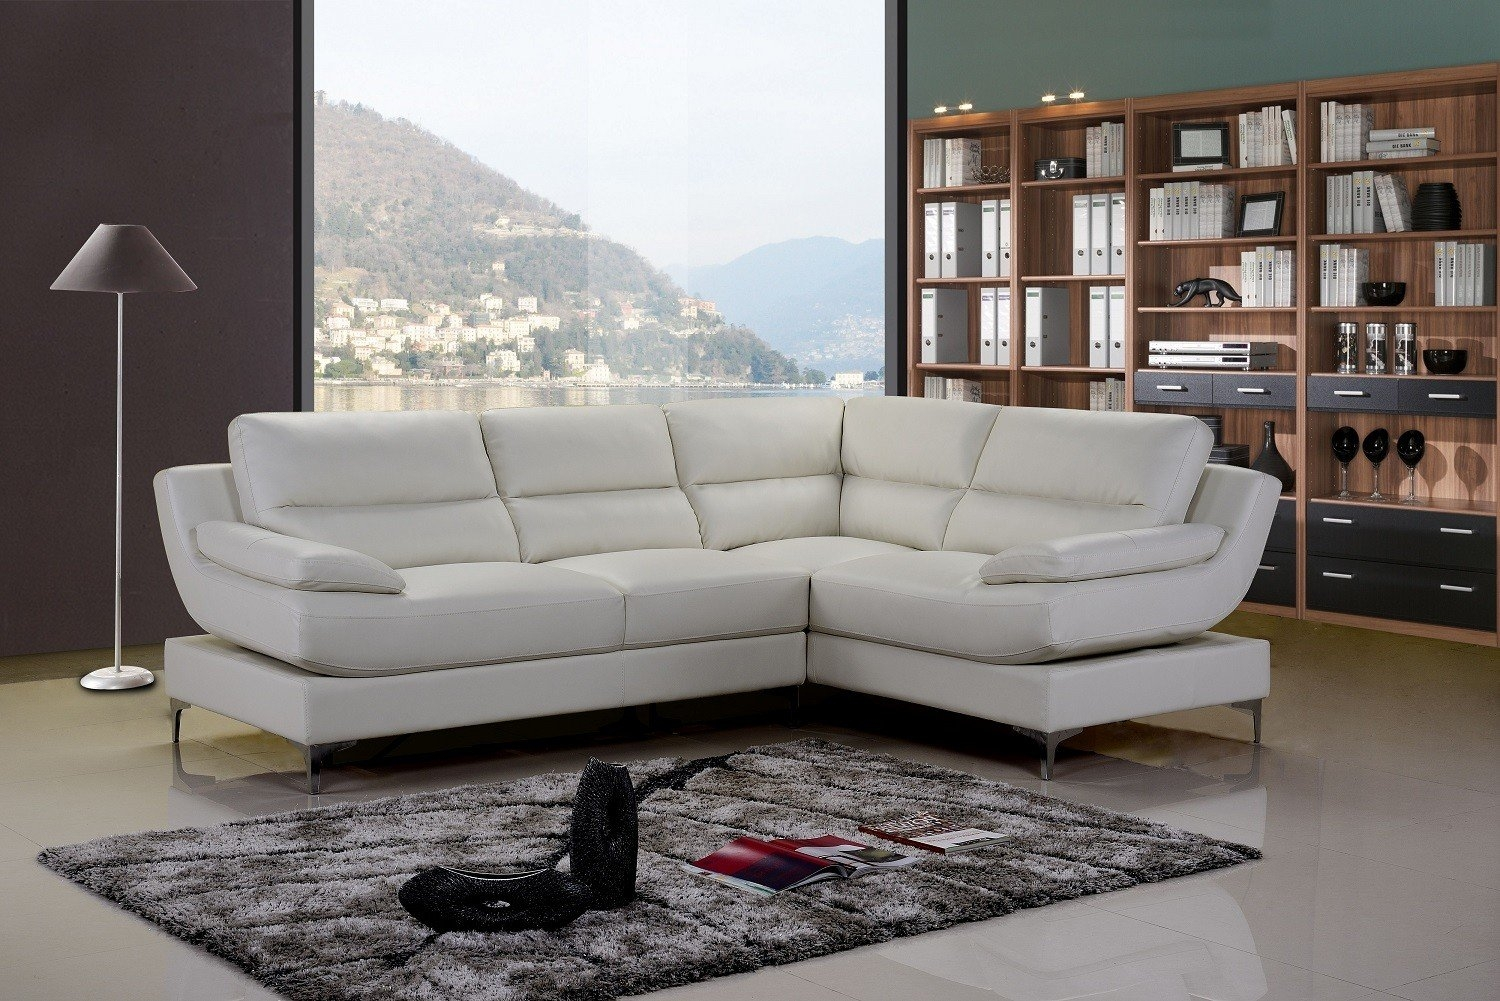 Monza White Leather Corner Sofa Right Hand Sofa Pinterest Within White Leather Corner Sofa (Photo 4 of 15)